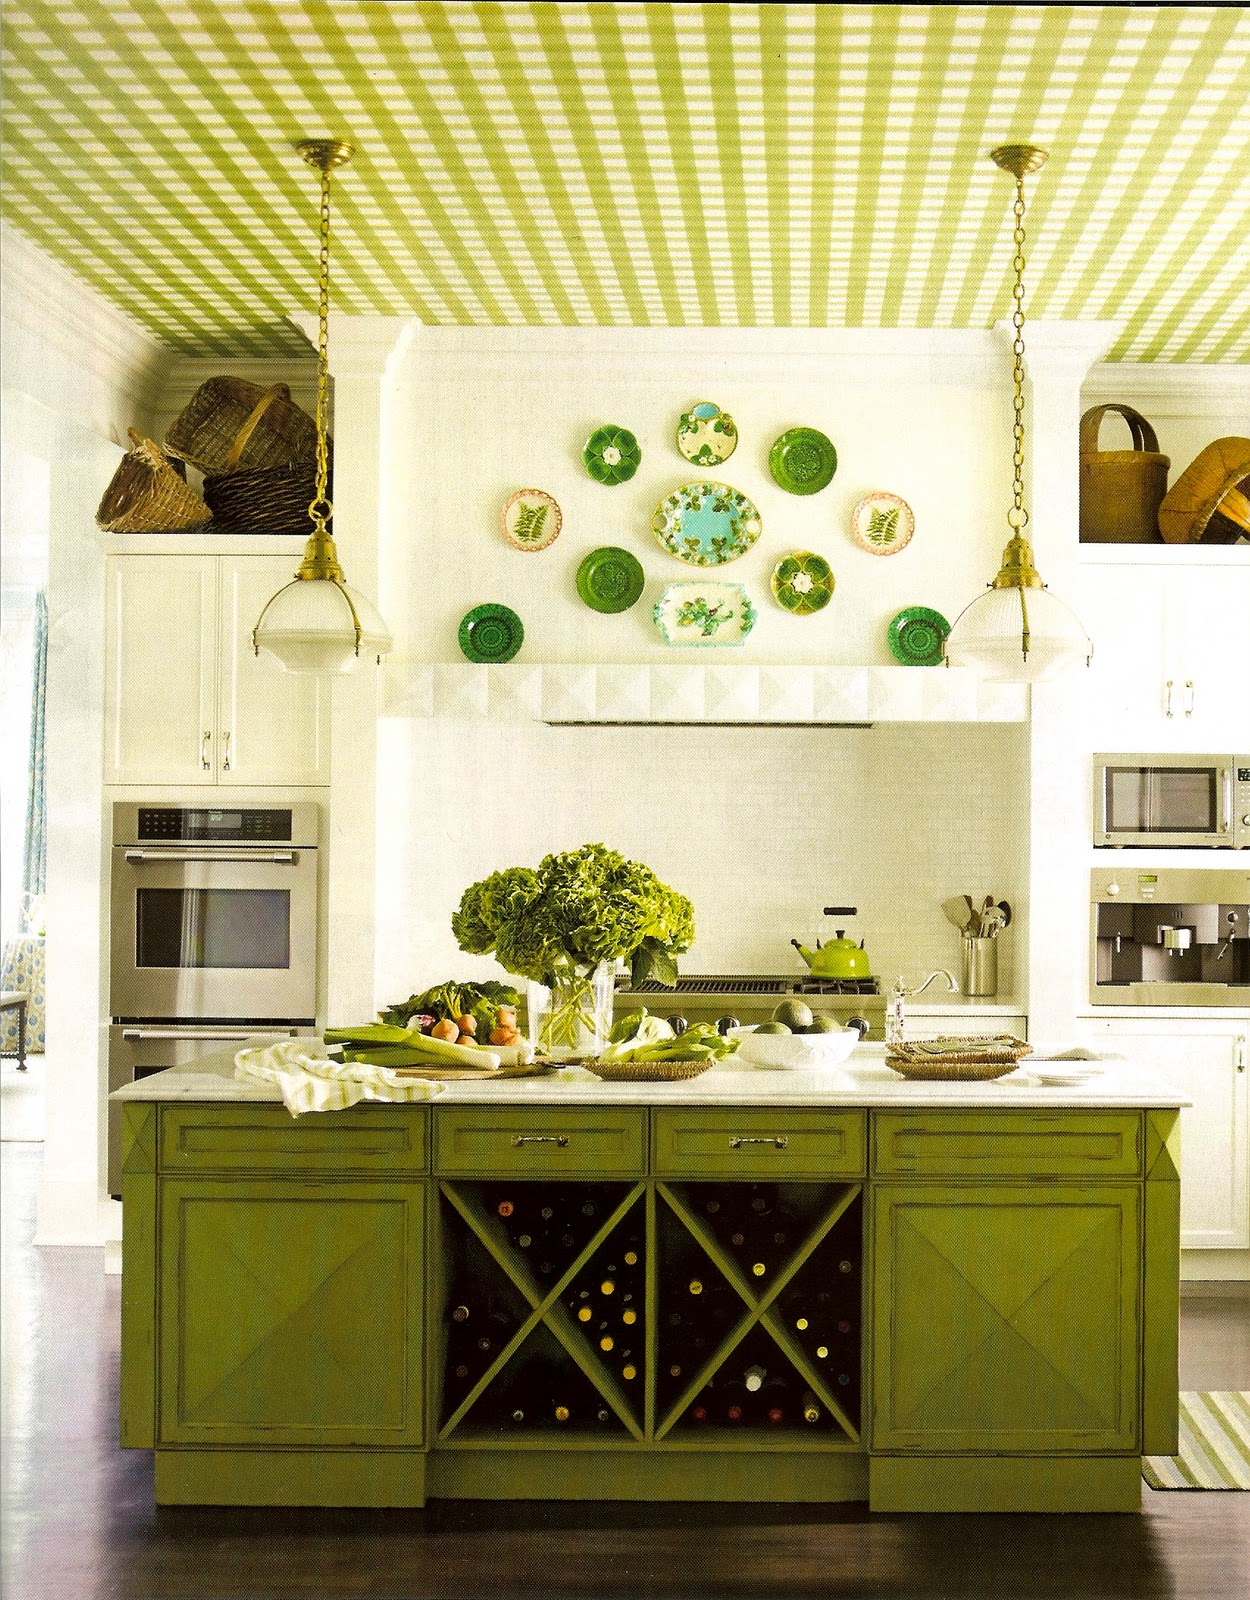 Decorating Your Home? How To Keep Your Home Green Whilst Doing So